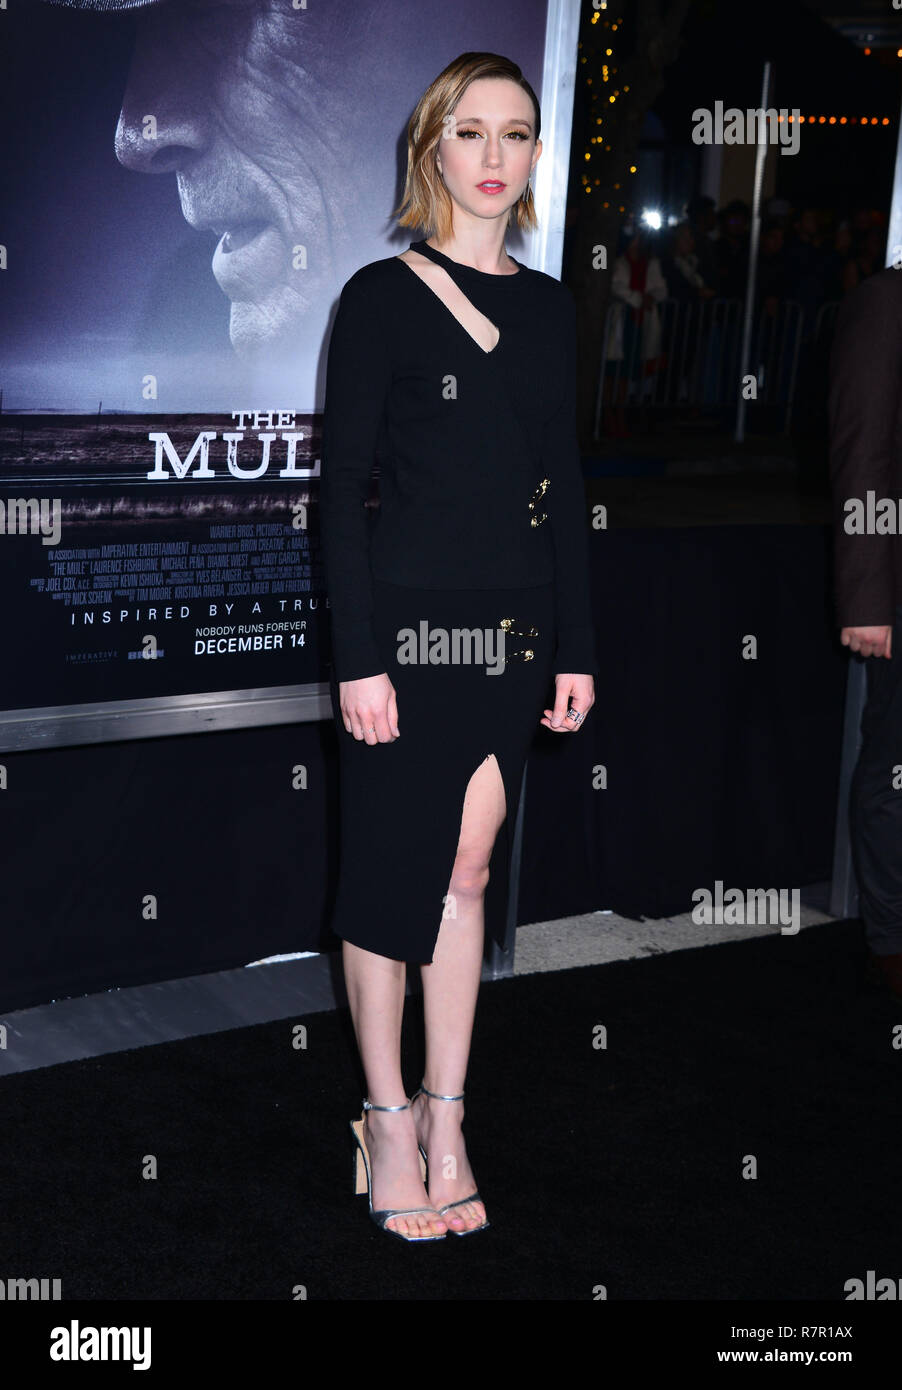 Westwood, California, USA. 10th Dec 2018. Taissa Farmiga 189 attends Warner Bros. Pictures World Premiere Of 'The Mule' at Regency Village Theatre on December 10, 2018 in Westwood, California. Credit: Tsuni / USA/Alamy Live News - Stock Image